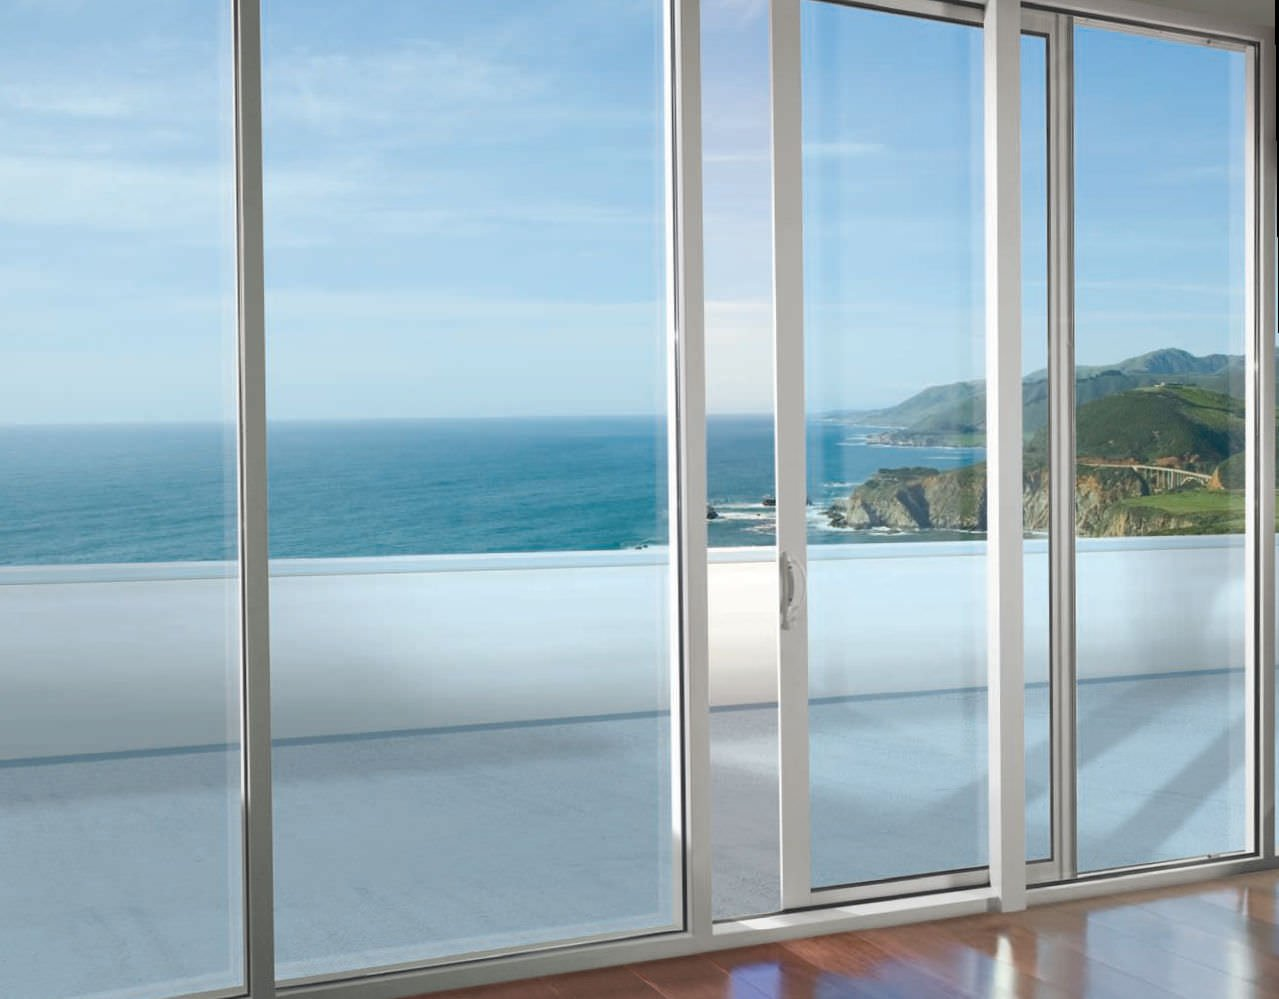 aluminium-patio-door-sliding-52158-3741795.jpg